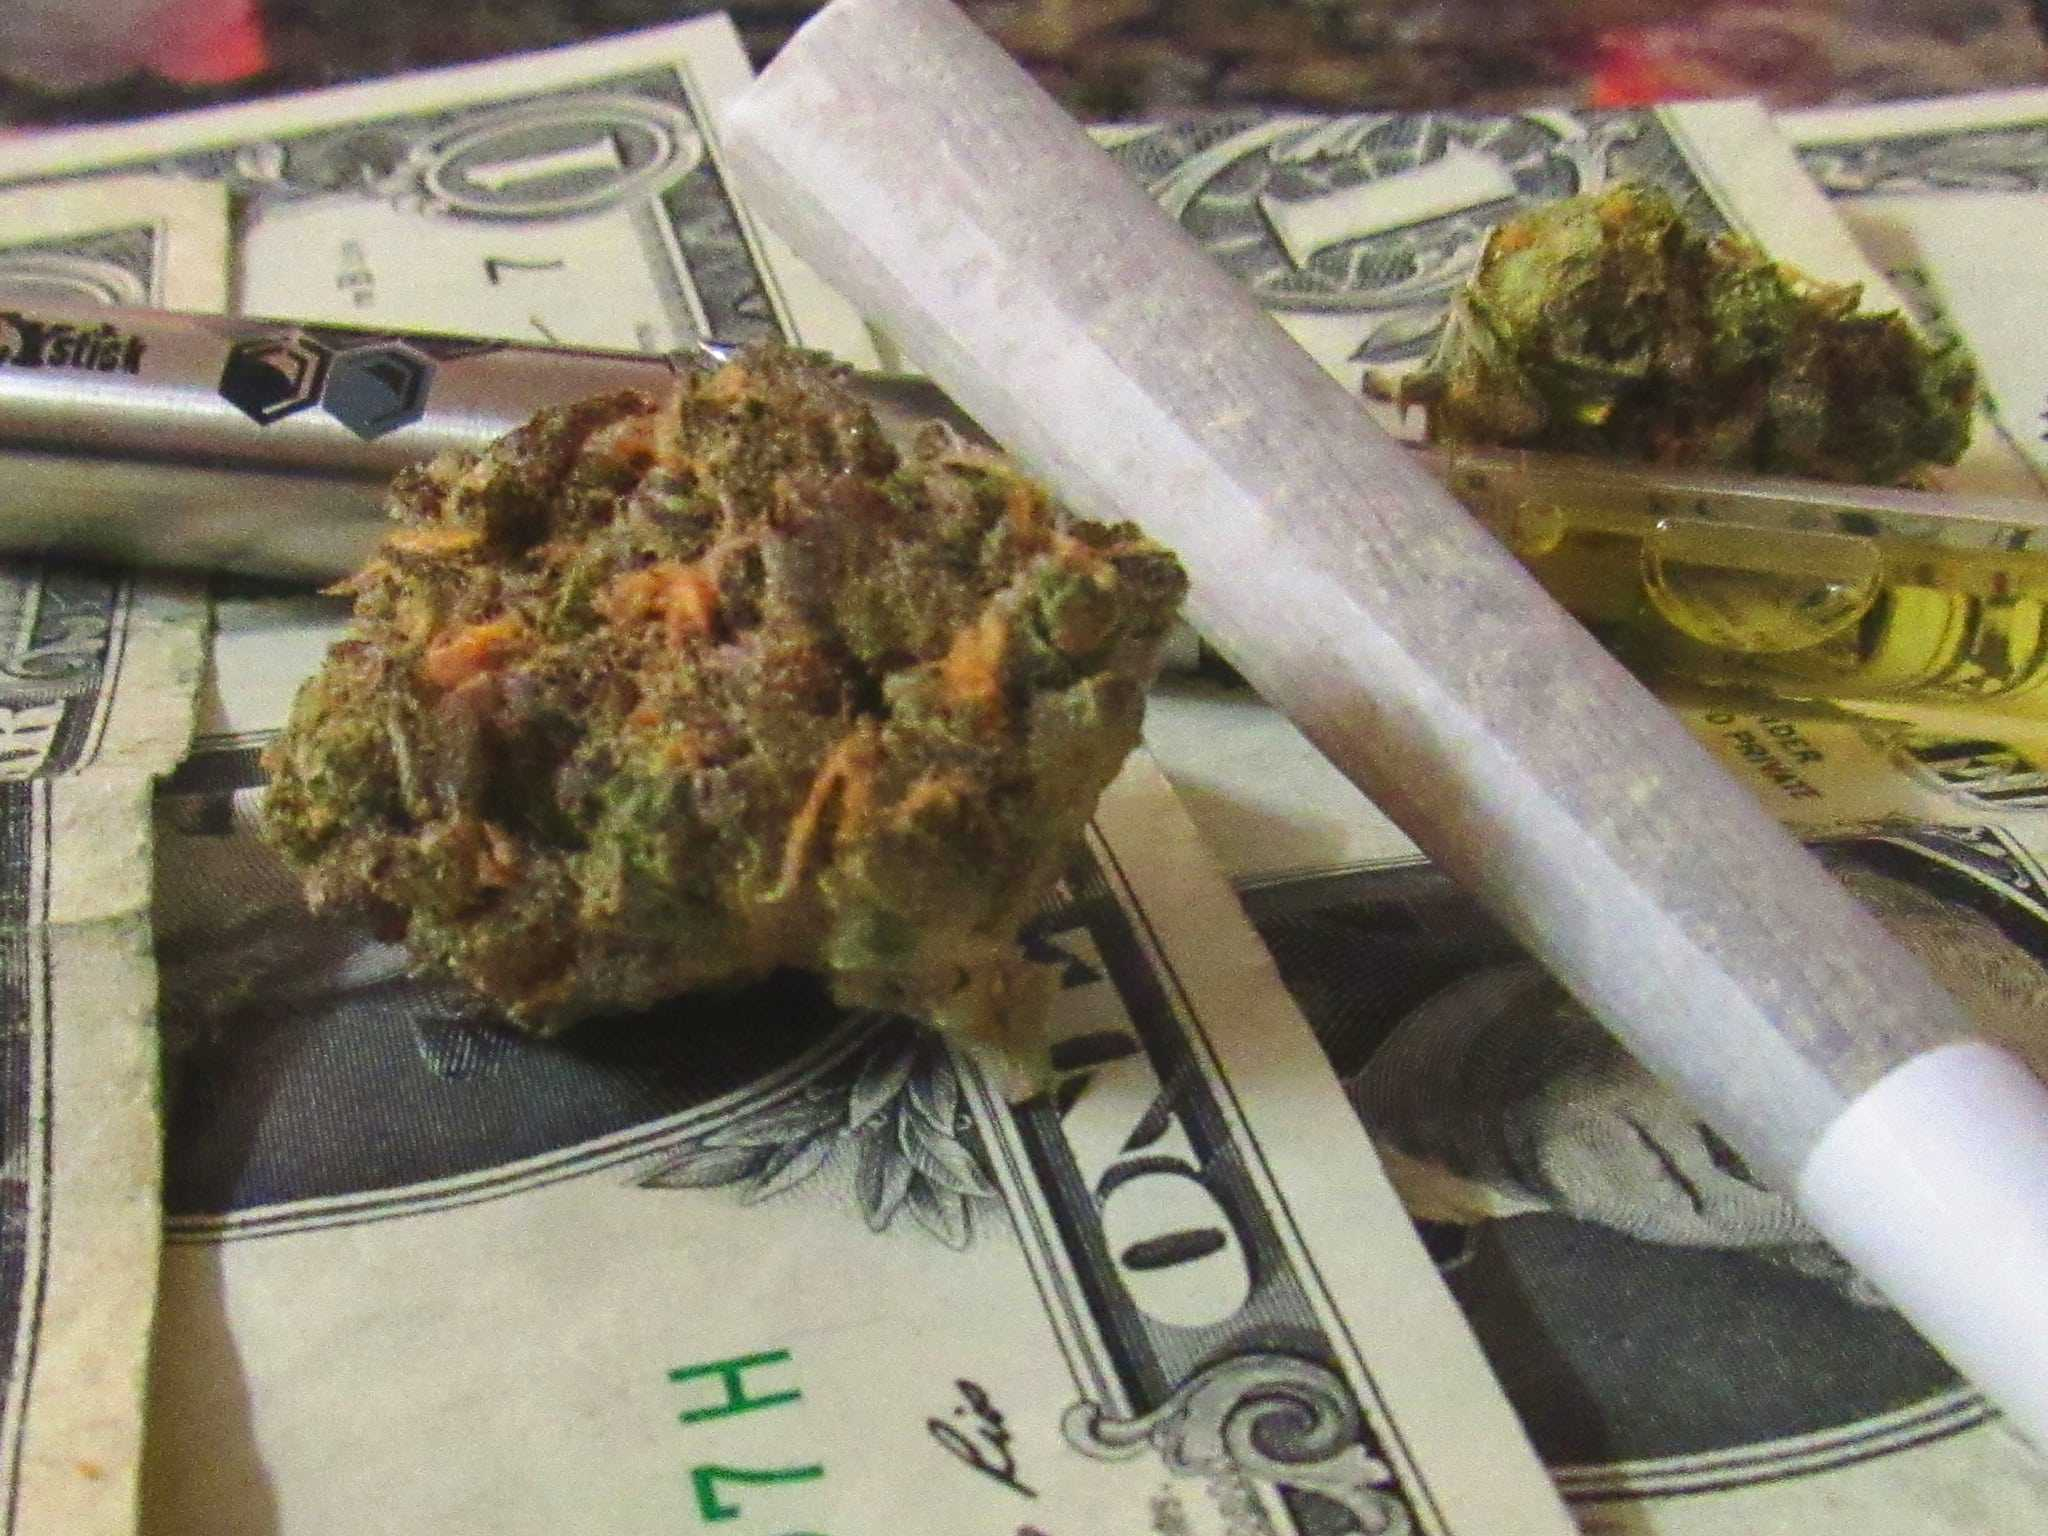 CBD and marijuana products on top of cash